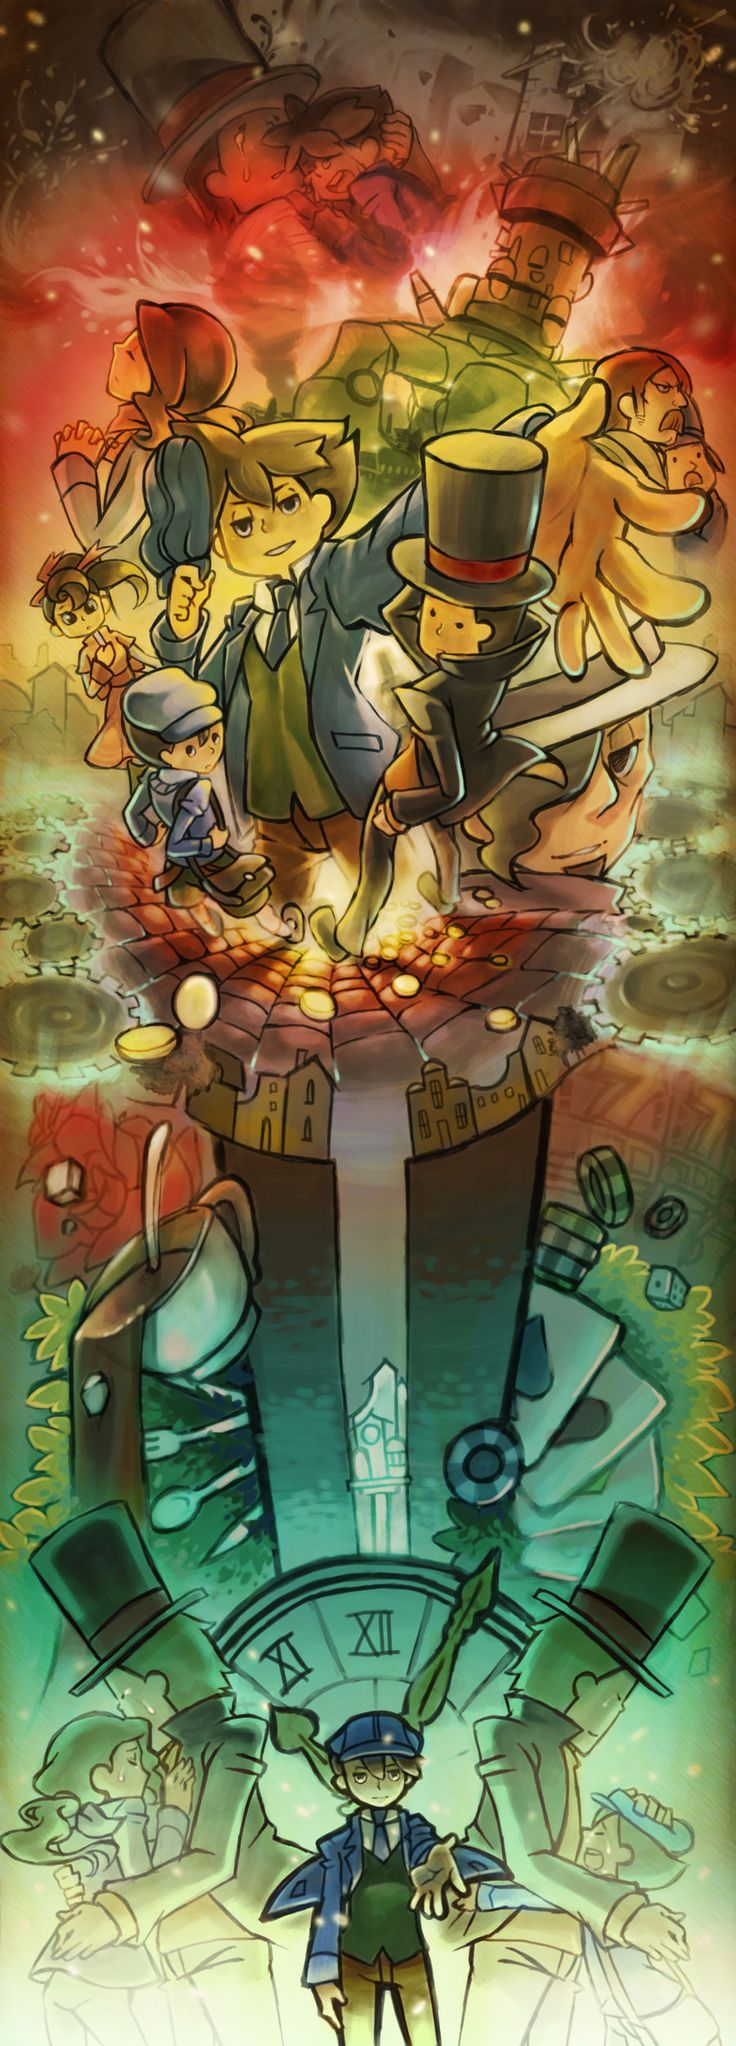 The Professor Layton games exposed a whole new generation of gamers to lateral thinking puzzles. As frustrating as some were, the payoff was always glorious! The narratives were also charming.